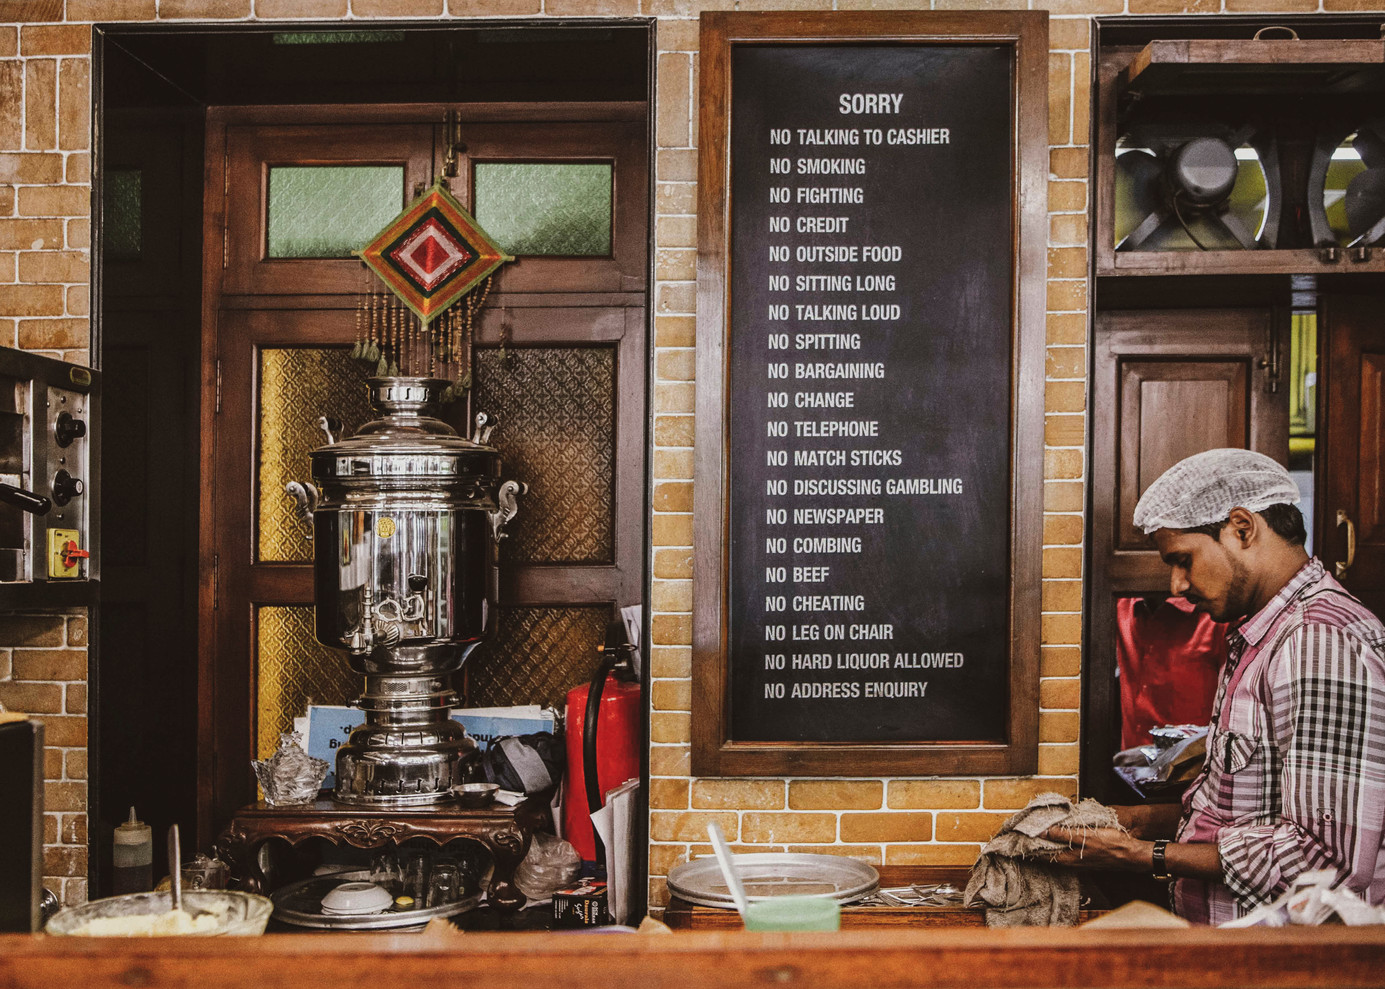 A typical blackboard with a list of rules at Cafe Irani Chaii of Mahim. A quirky feature at the Irani cafes are the long list of 'restaurant rules' which are expected to be followed by all including the owners and staff. Irani Chaii's 'no combing' rule seems out of place even on a list of oddities.